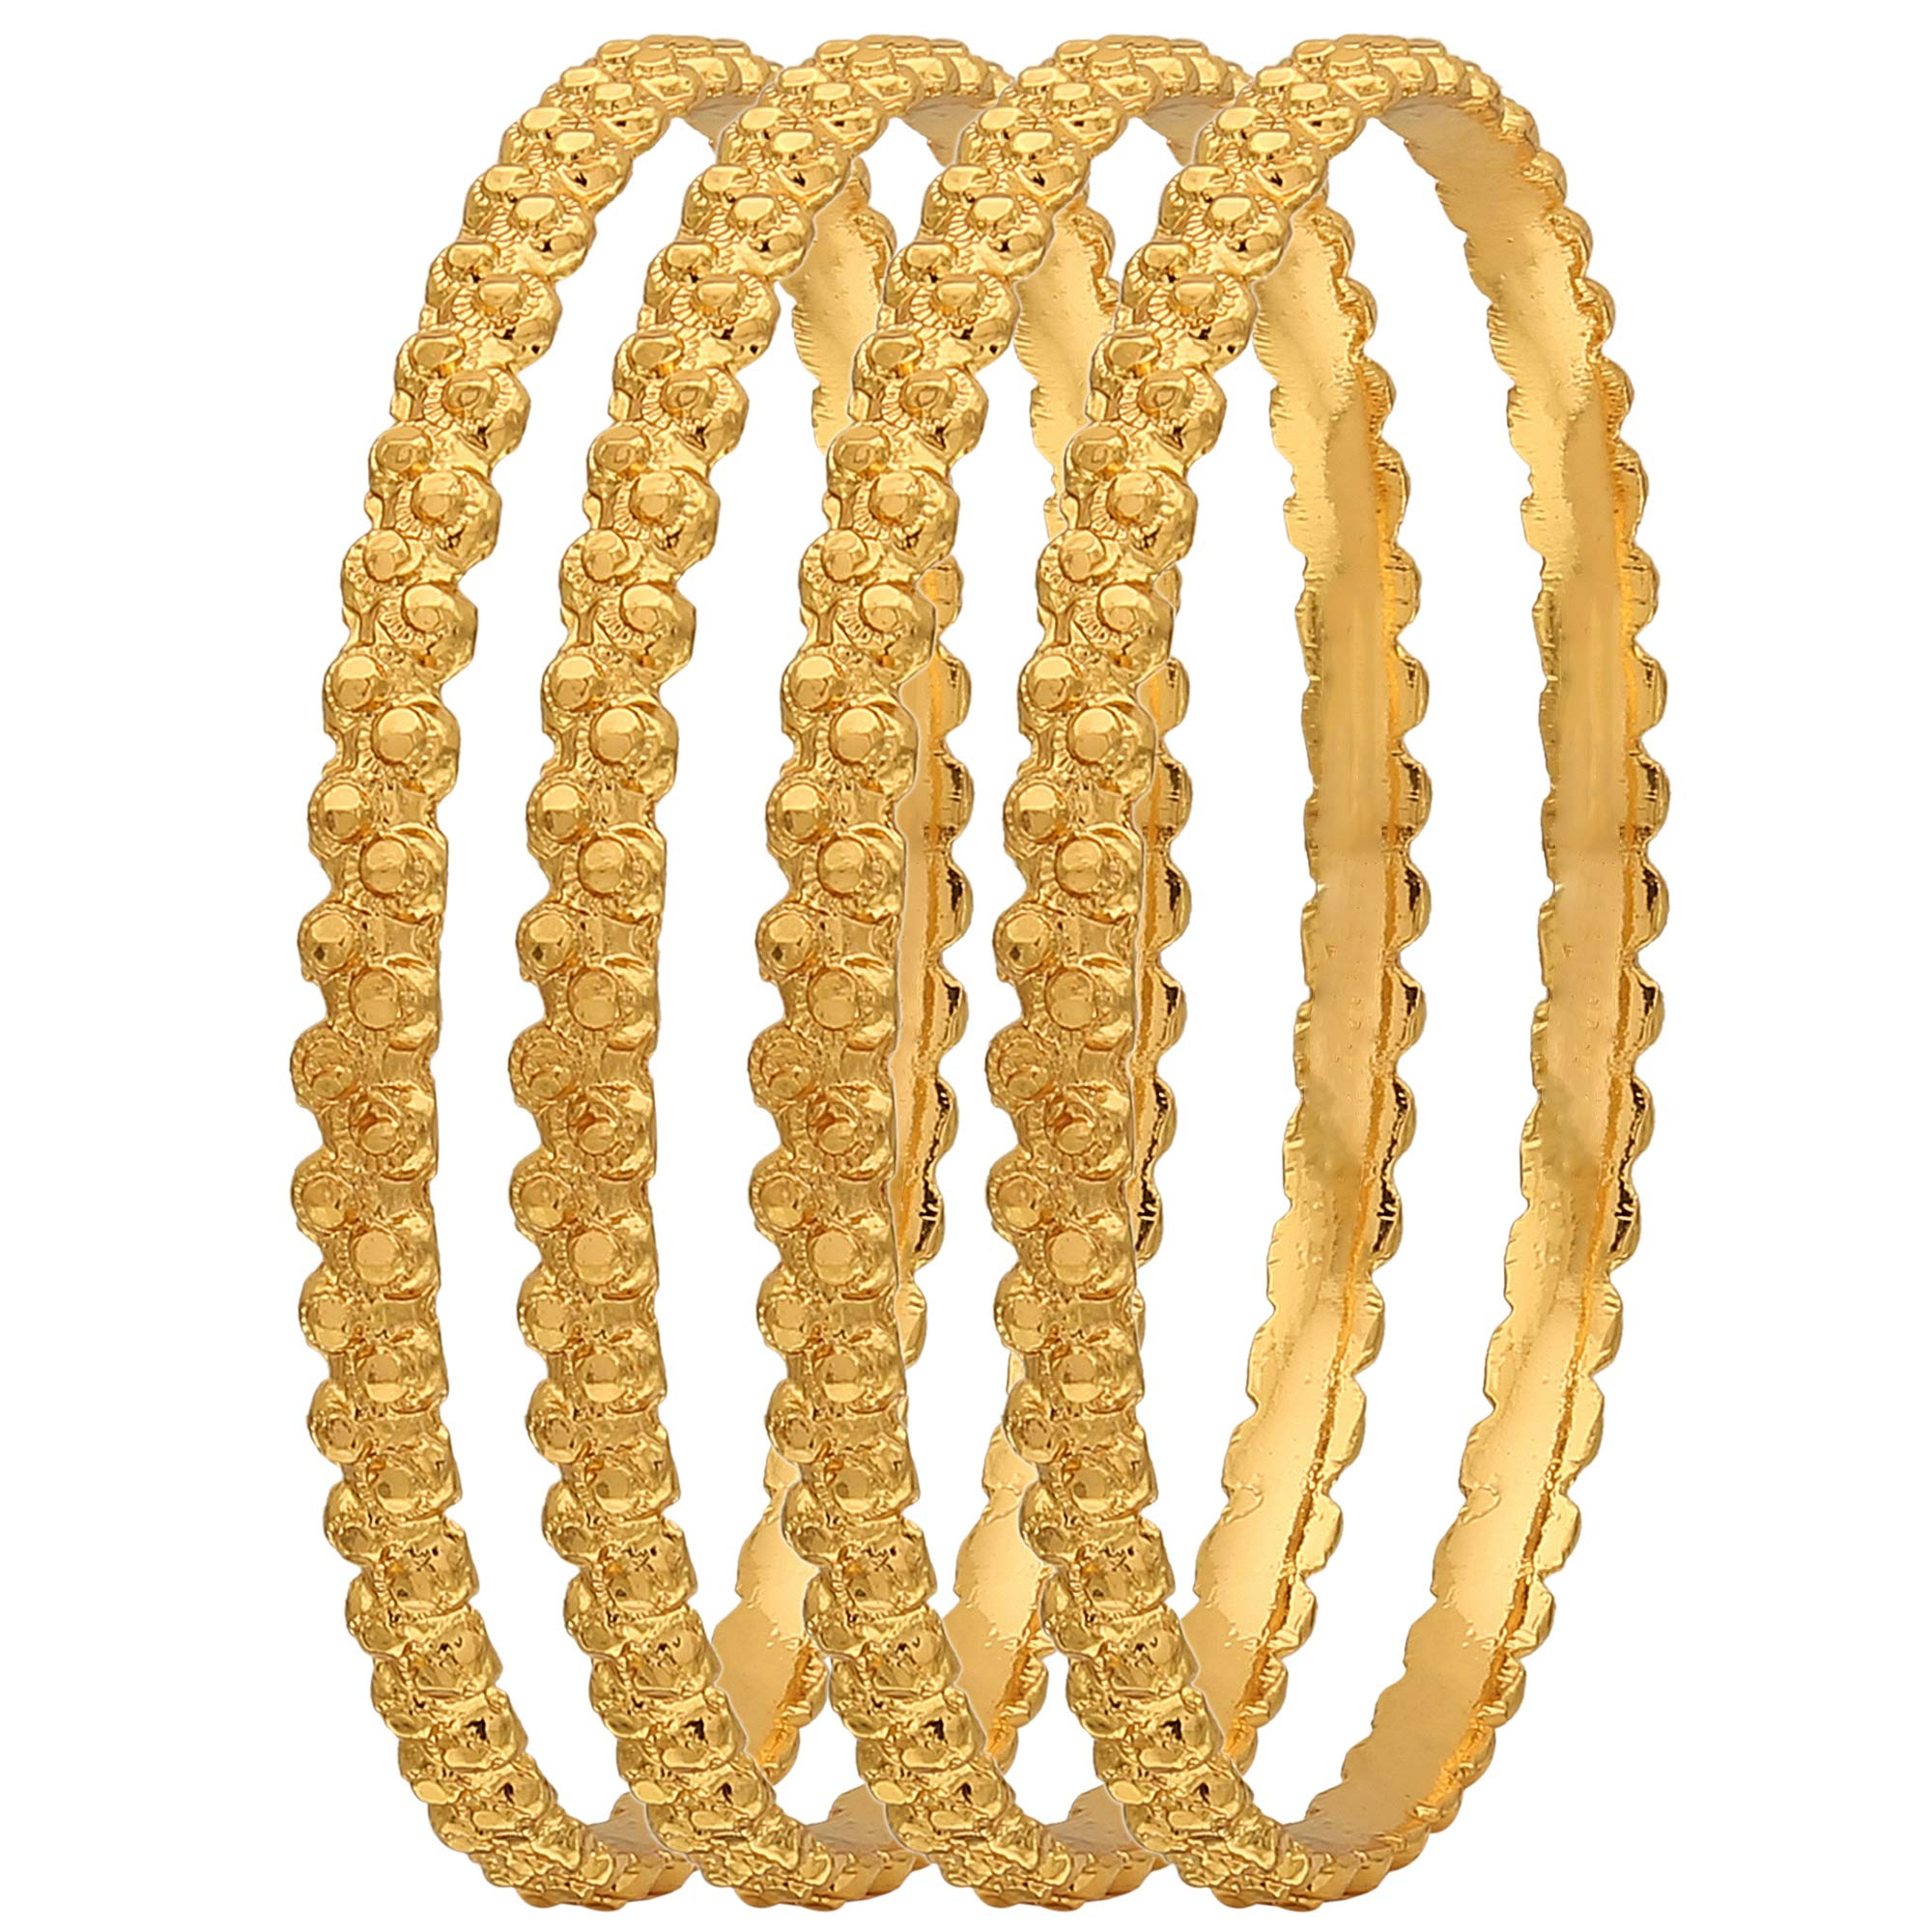 Sasitrends 1 Gram Gold Plated Thick Size Daily Wearable Bangles for Women - Set of 4 (B07GCQNCMK) Amazon Price History, Amazon Price Tracker